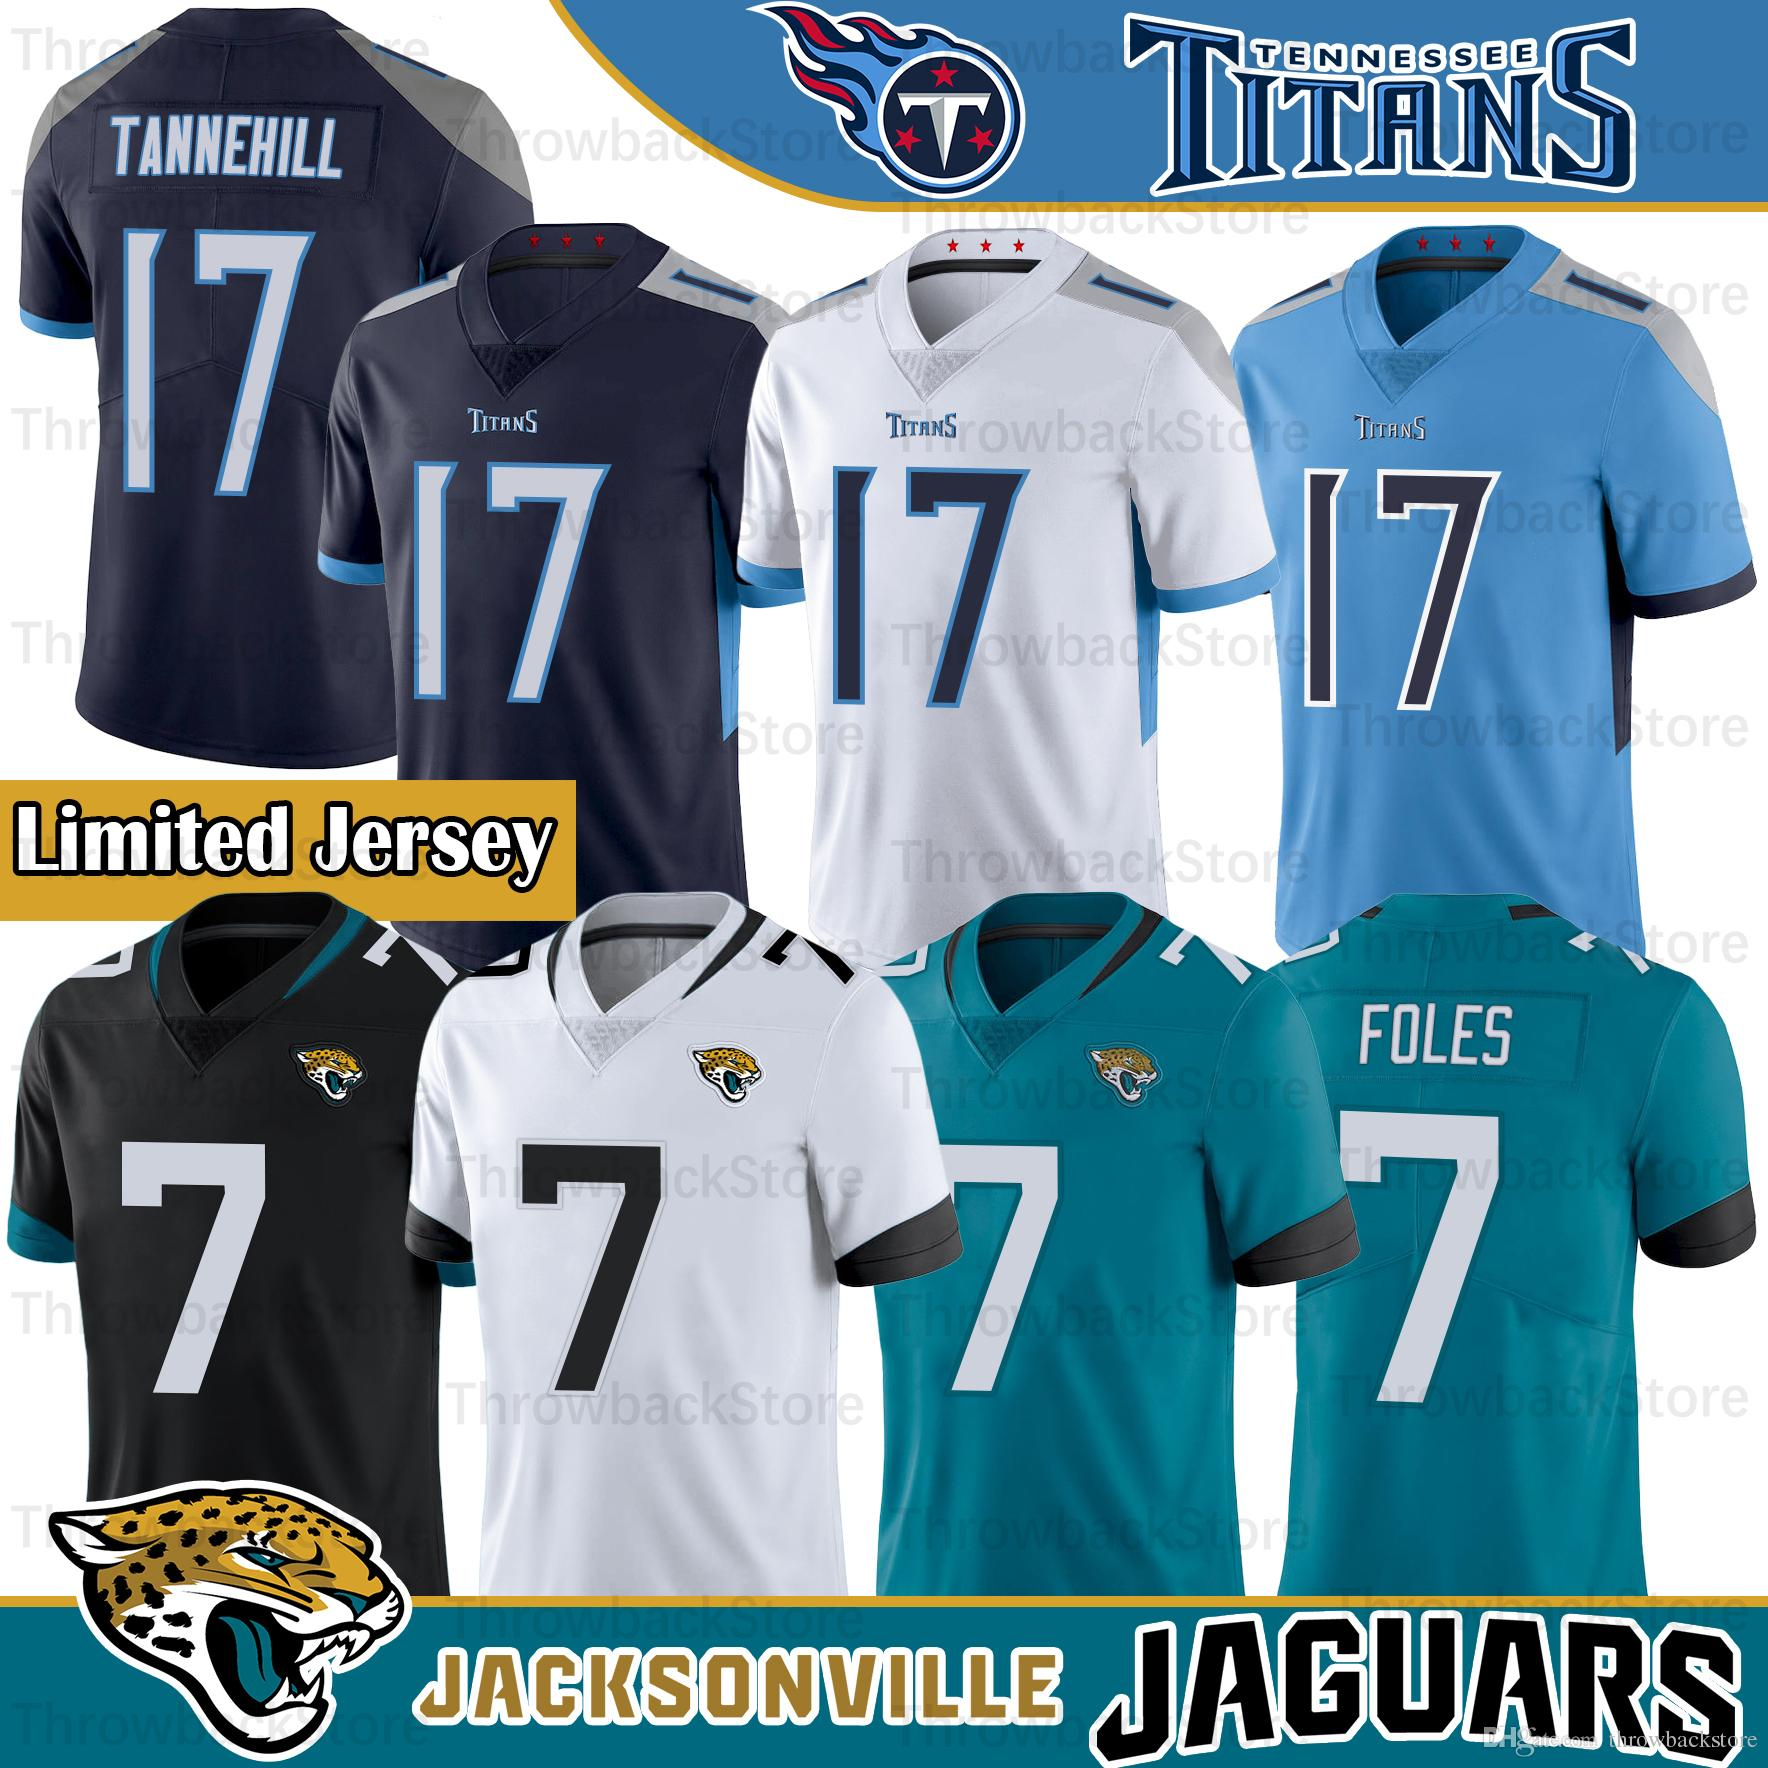 wholesale dealer 24e8a 83815 17 Ryan Tannehill Titans Jersey Tennessee 2019 New Jacksonville 7 Nick  Foles Jaguars American Football Limited jersey